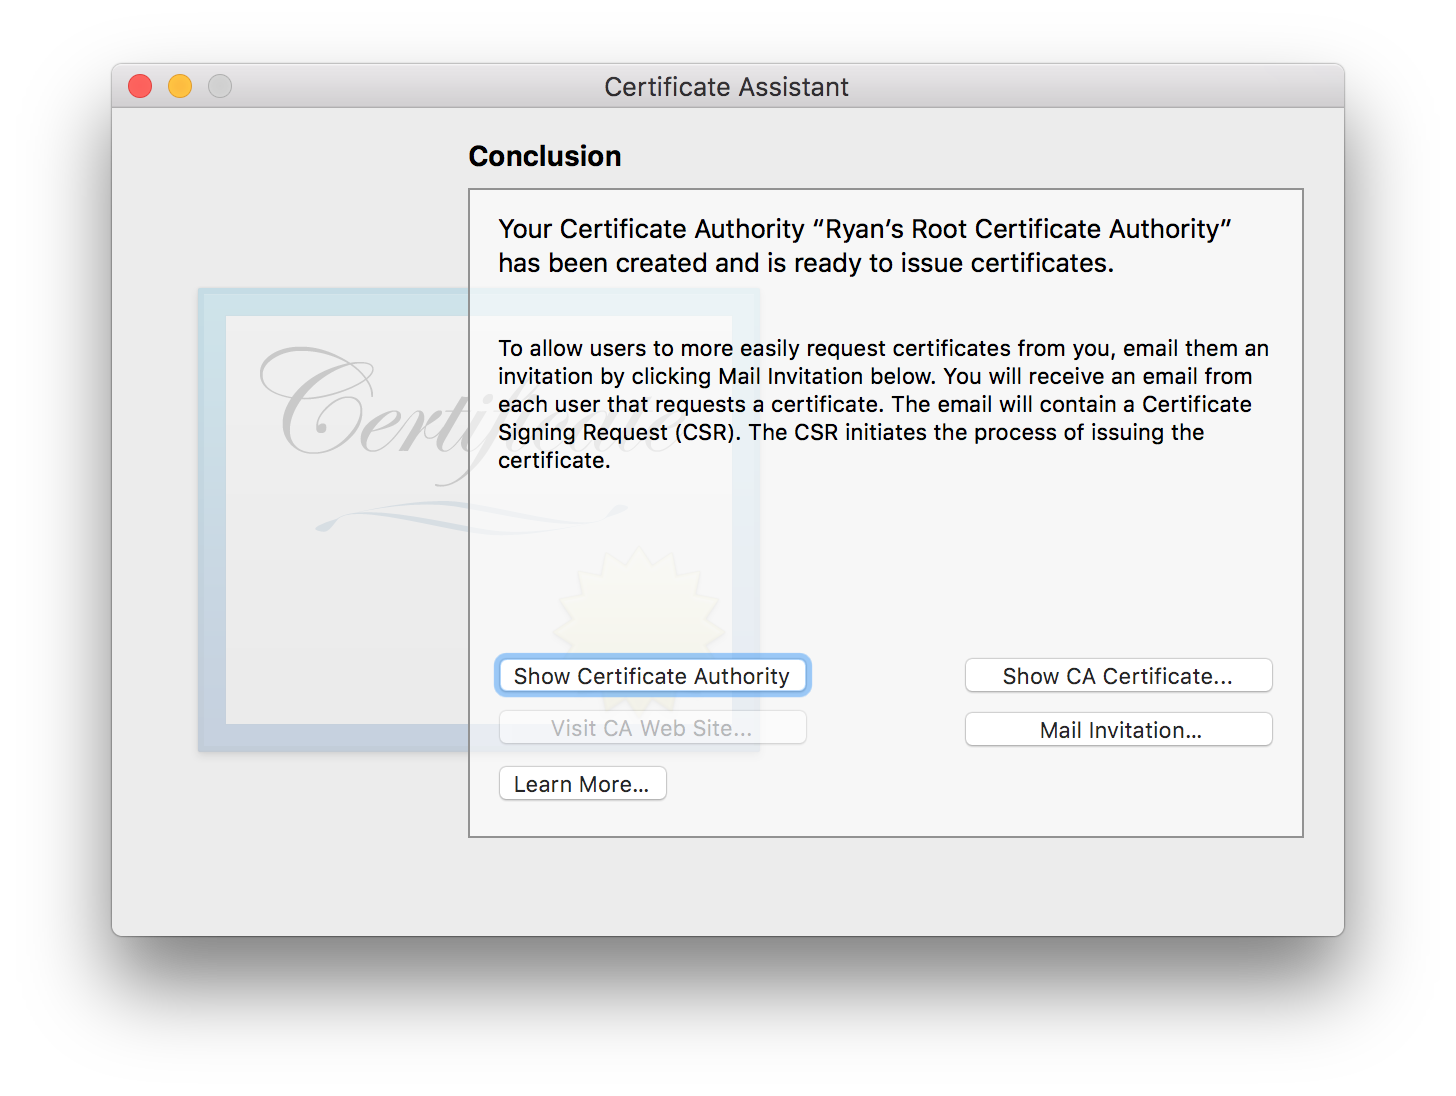 Certificate Authority has been created.